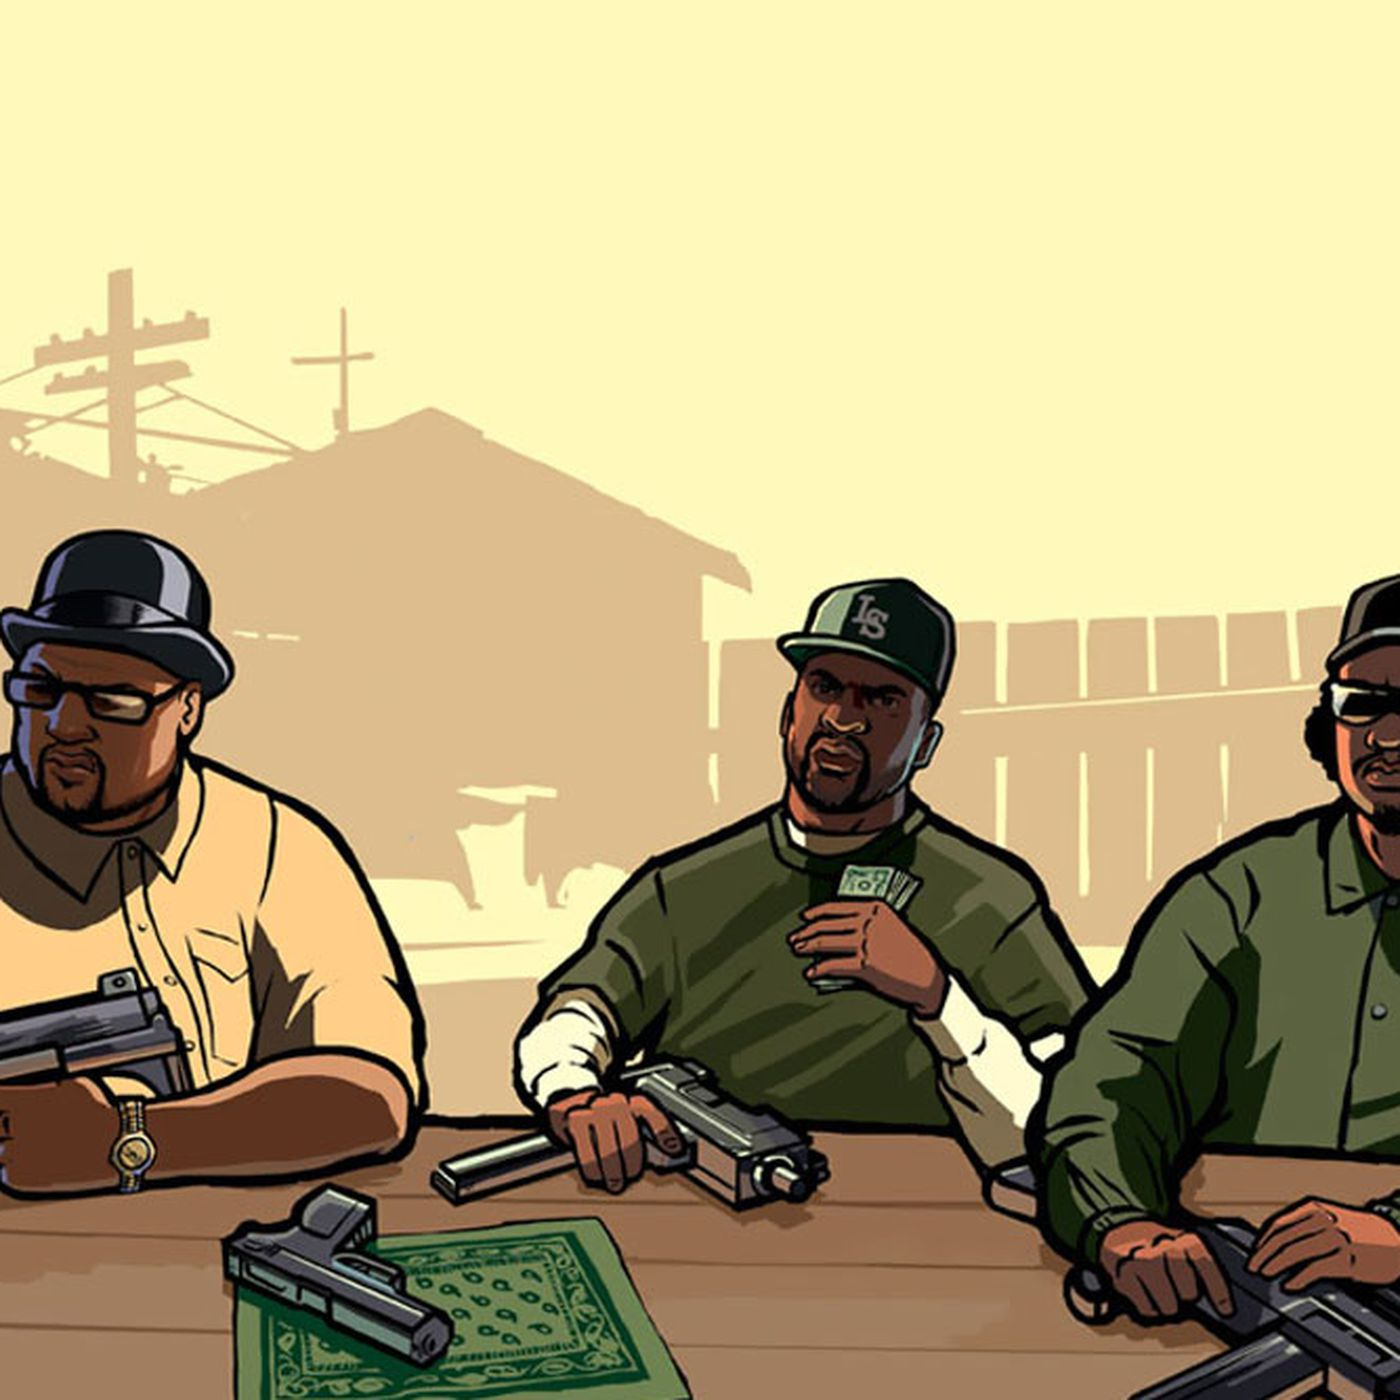 Updated GTA: San Andreas on Steam nullifies old save files